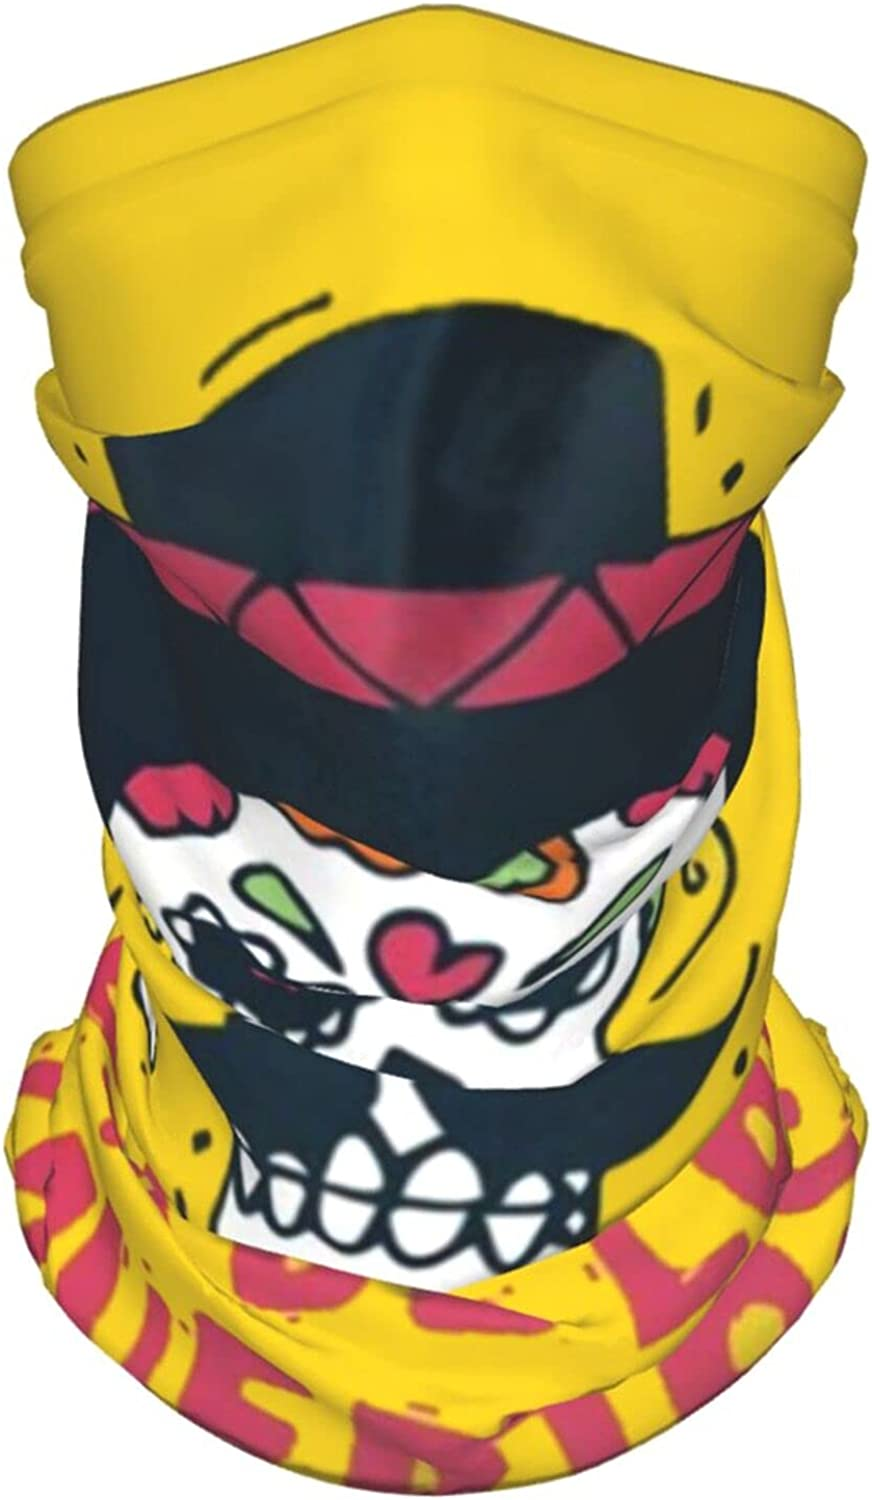 Day Dead Mexican Human Skull Sombreros Holidays Art Summer Ice Silk Breathable Face Mask Neck Gaiter Scarf Bandanas for Fishing,Hiking,Running,Motorcycle and Daily Wear